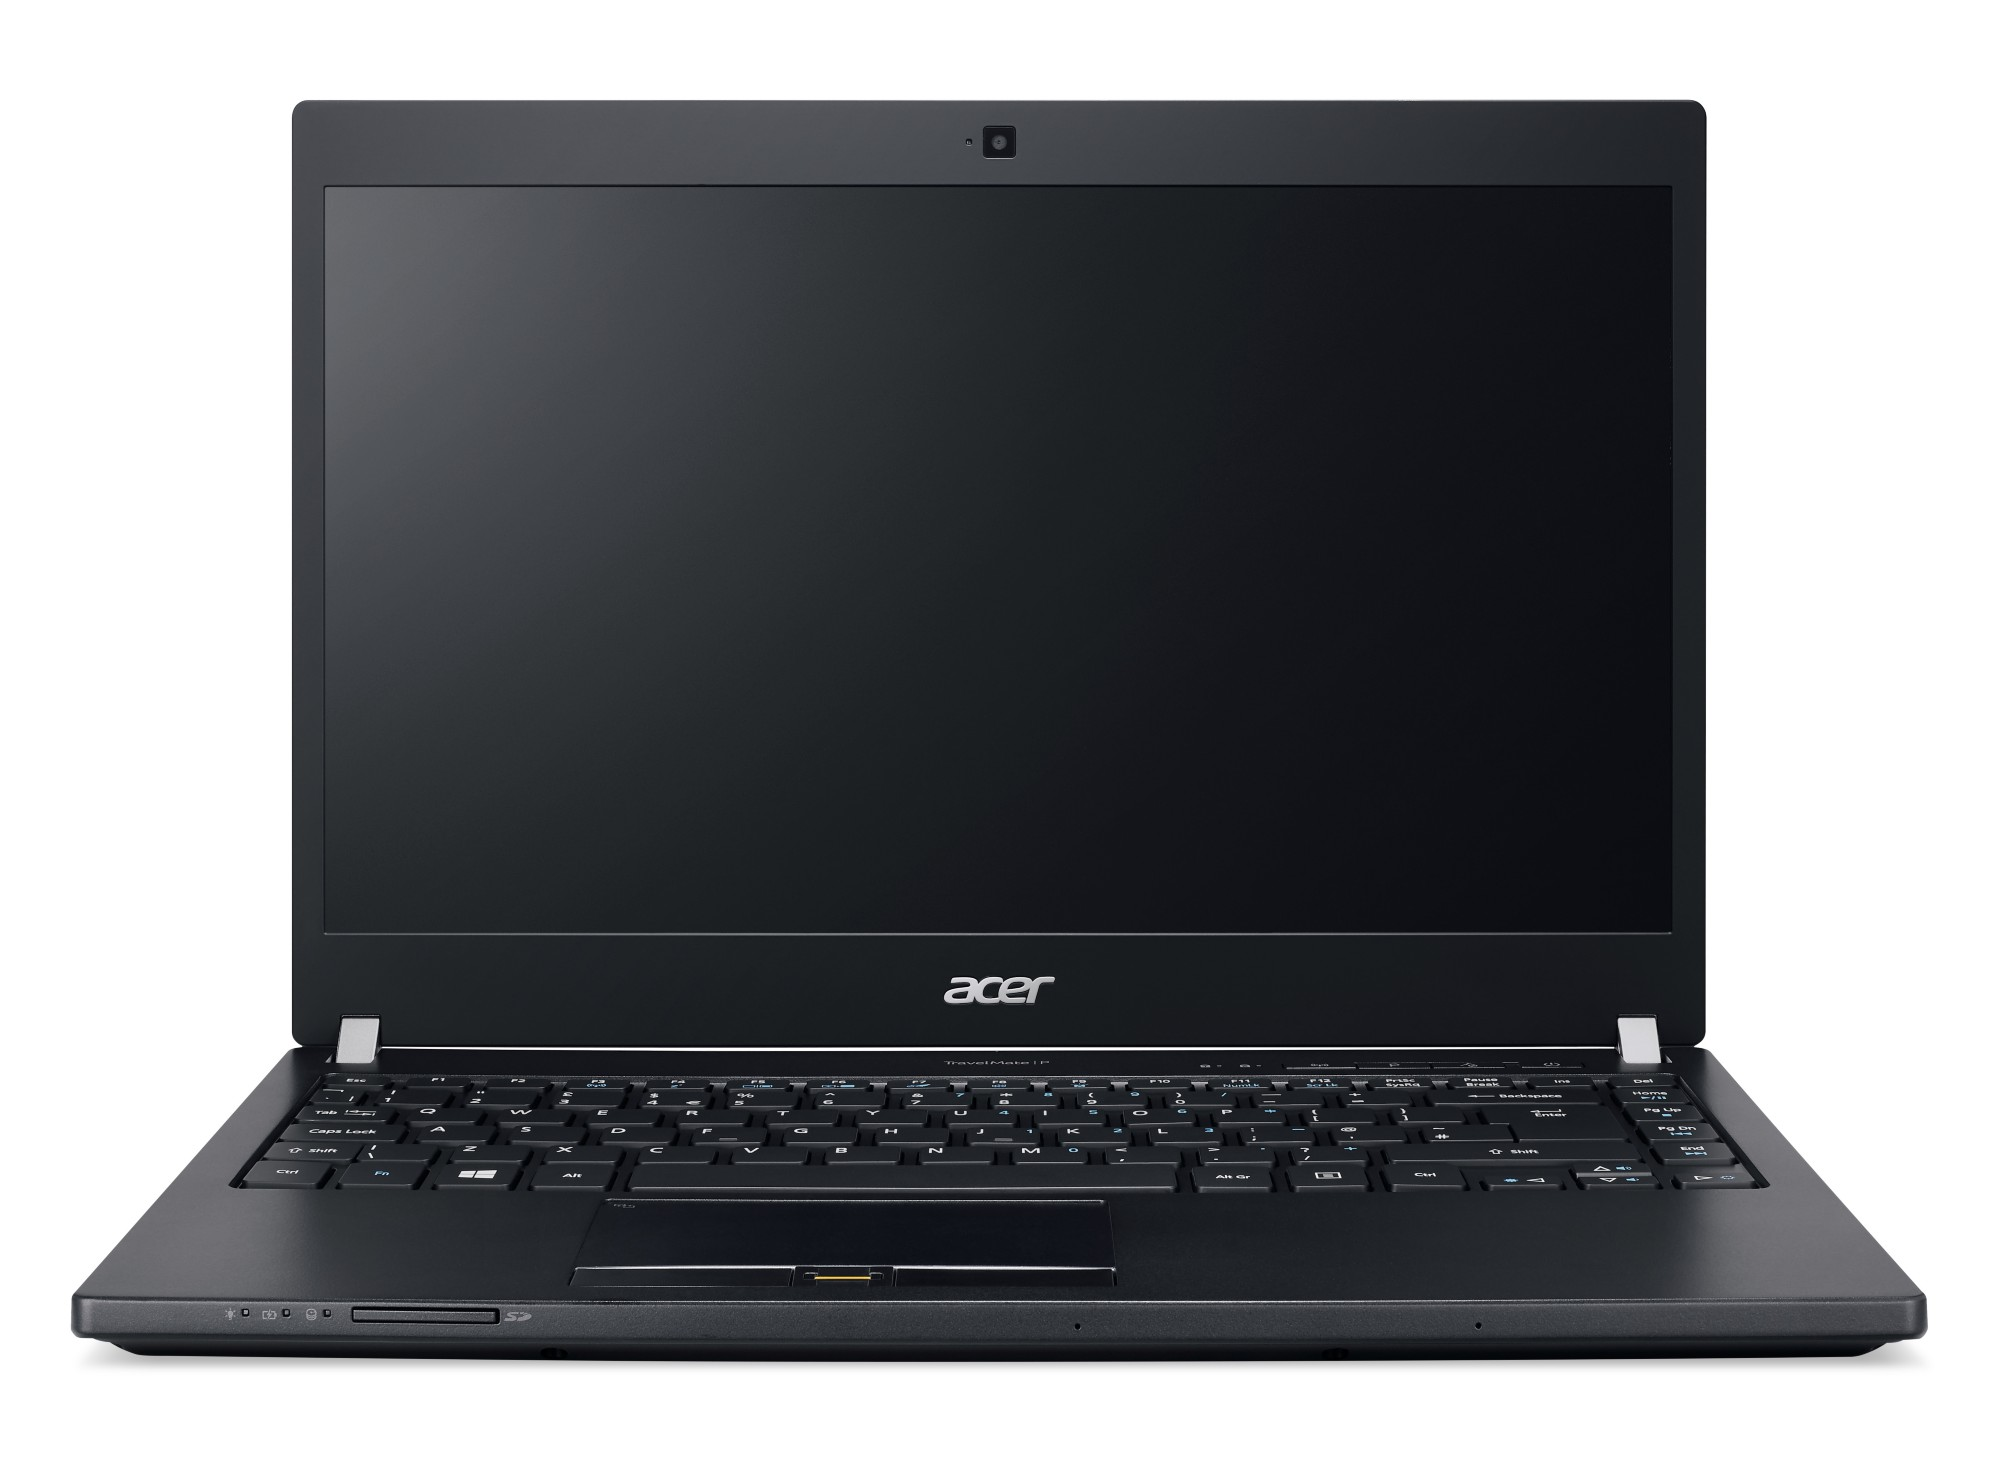 Acer TMP648 G3 14in 8G 256G SSD Windows 10 Laptop